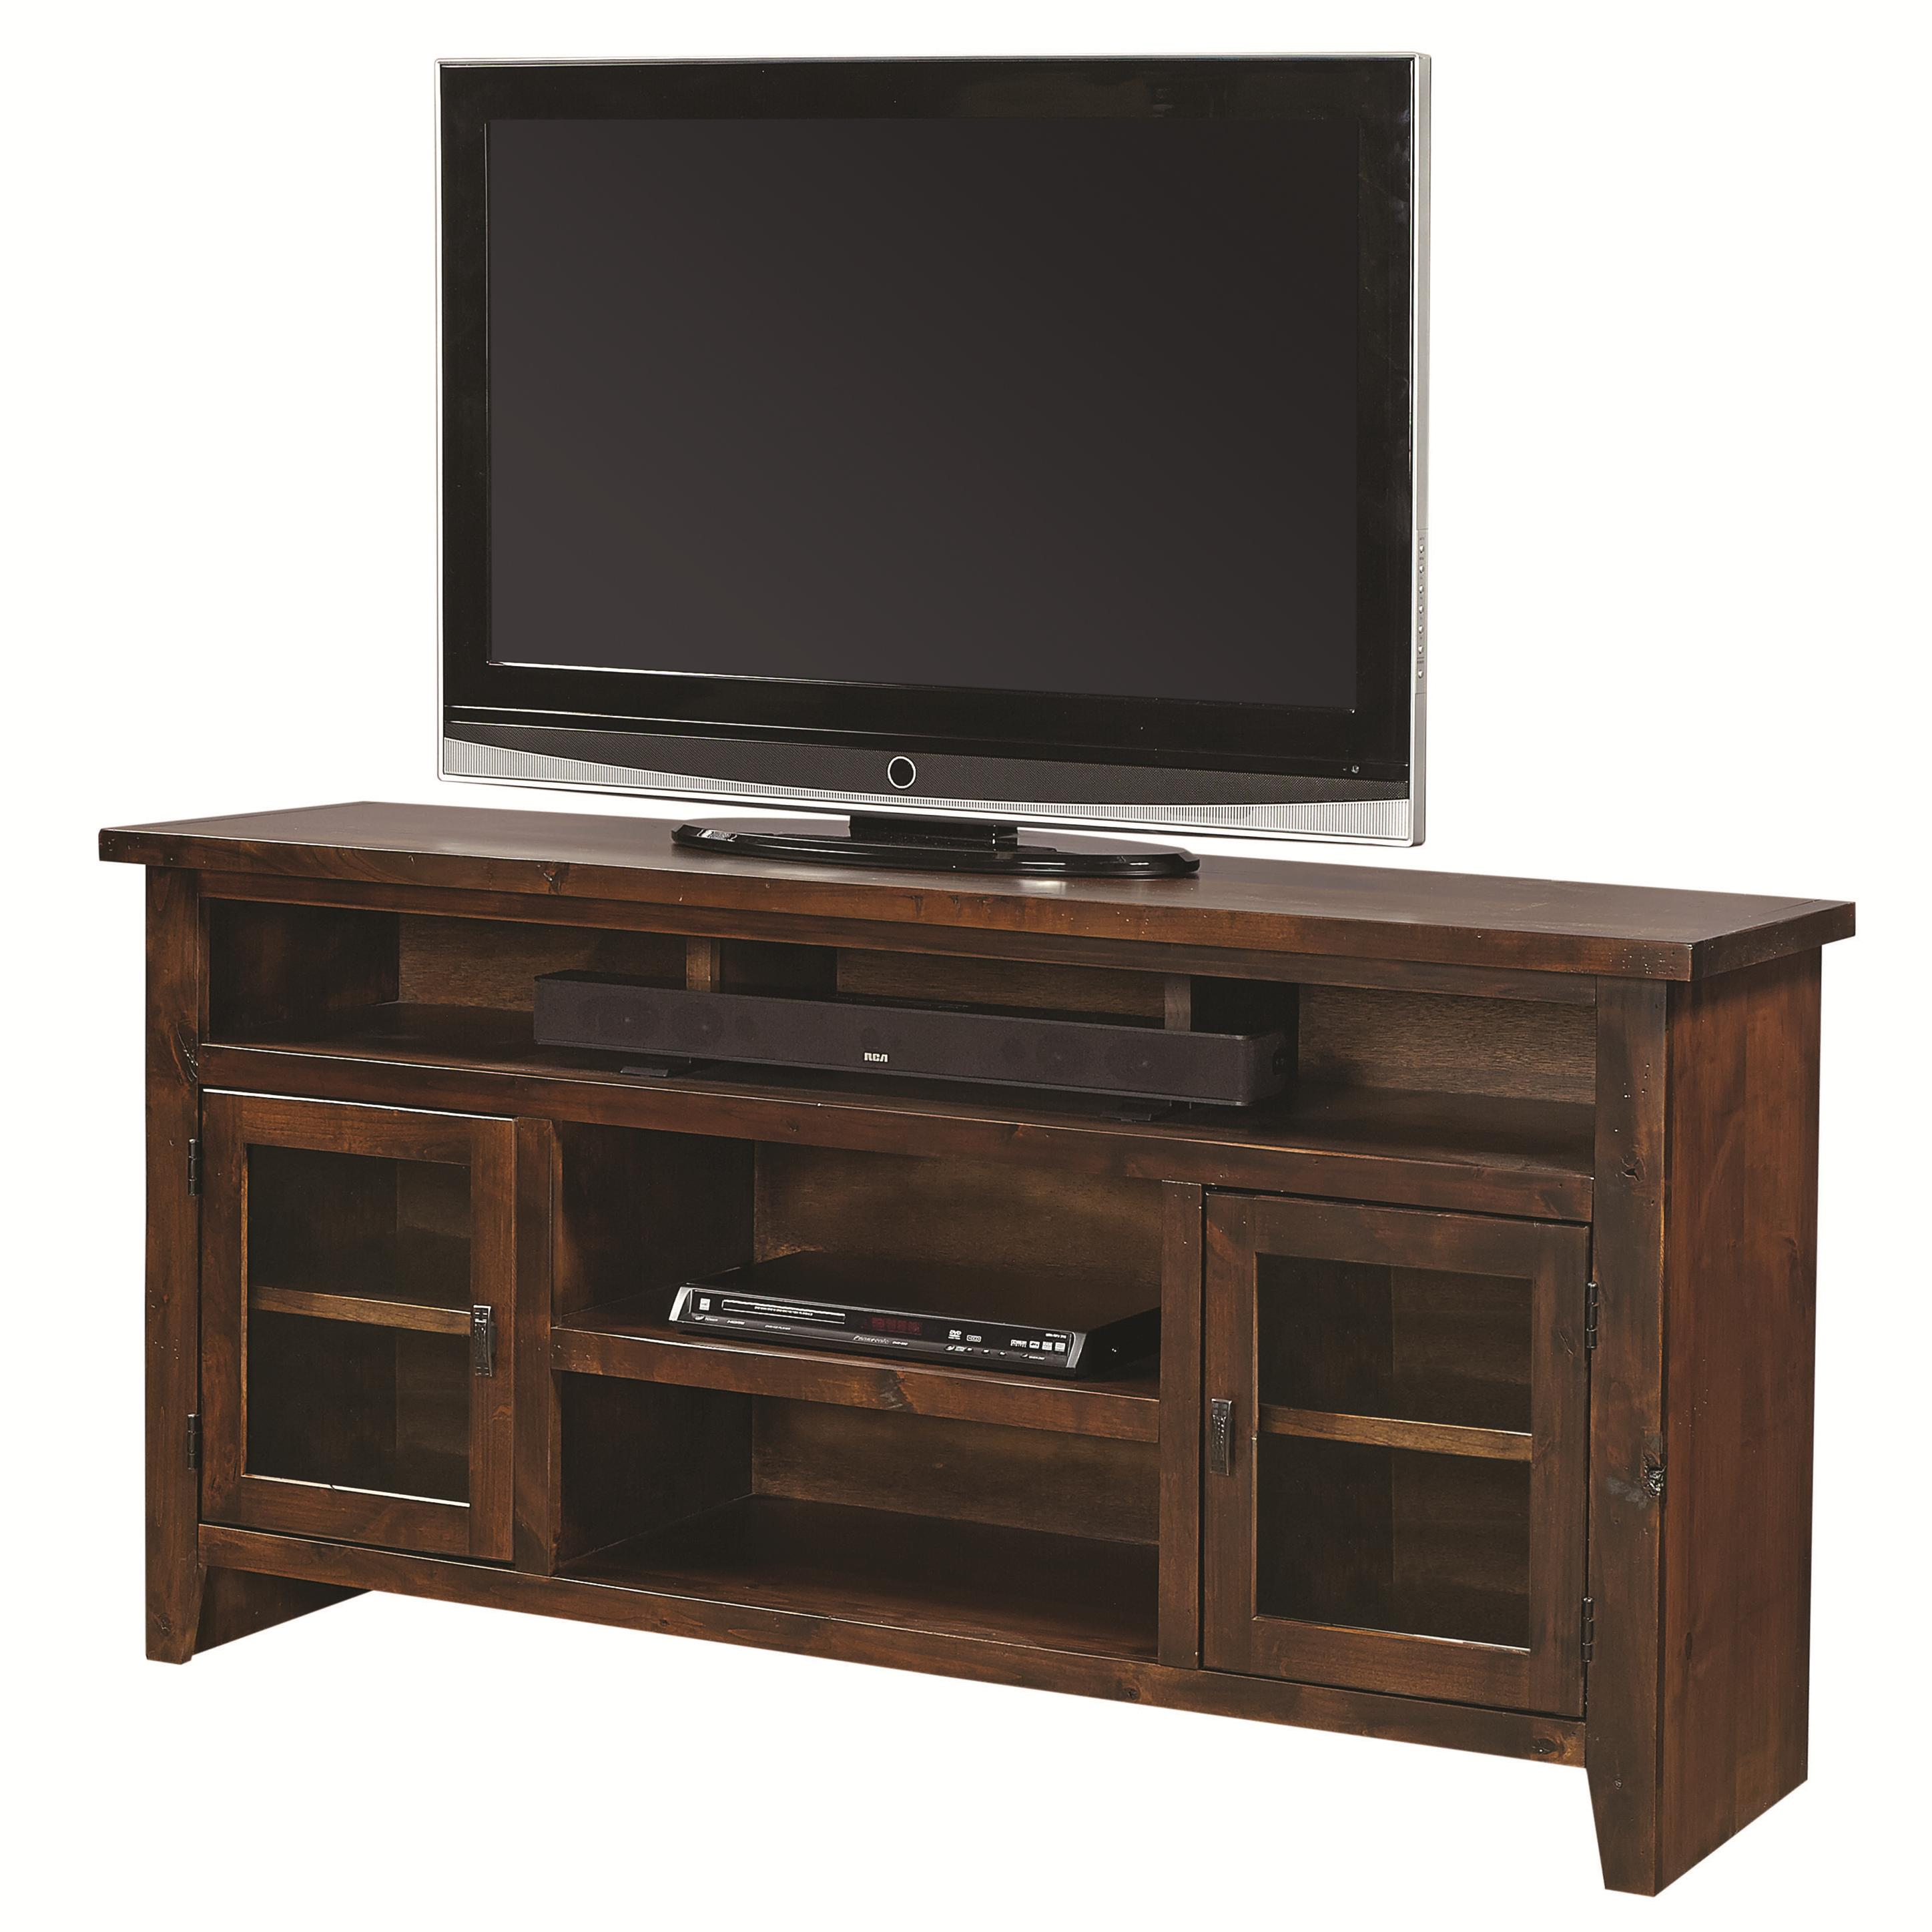 "Alder Grove 65"" Console with Doors by Aspenhome at Walker's Furniture"